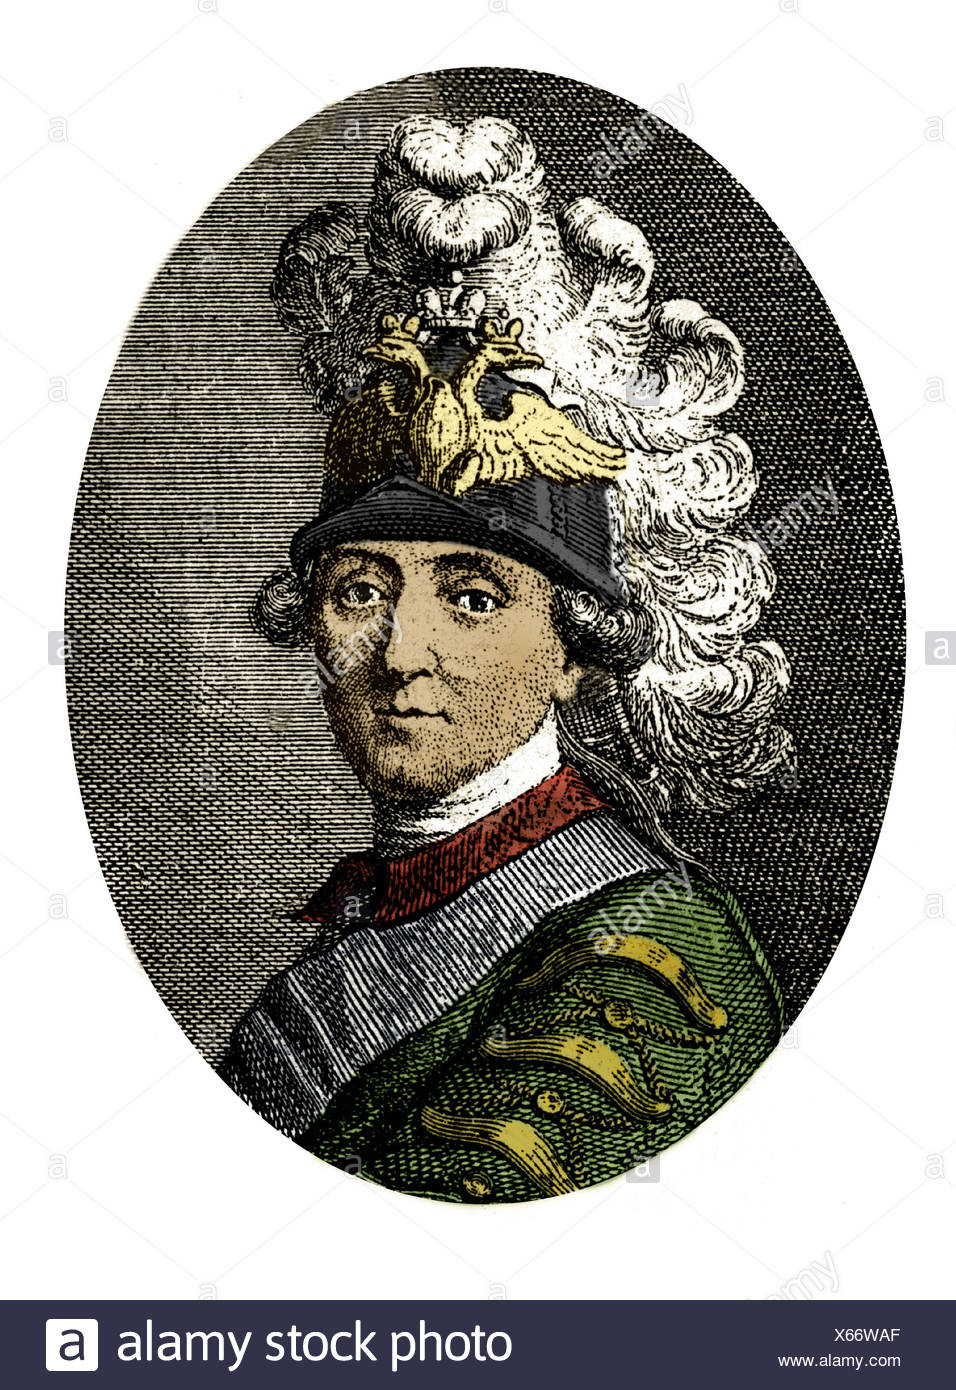 Orlov, Grigory Grigoryevich, 1737 - 5.1.1809, Russian Admiral, portrait, after contemporary engraving, 18th century, Artist's Copyright has not to be cleared - Stock Image